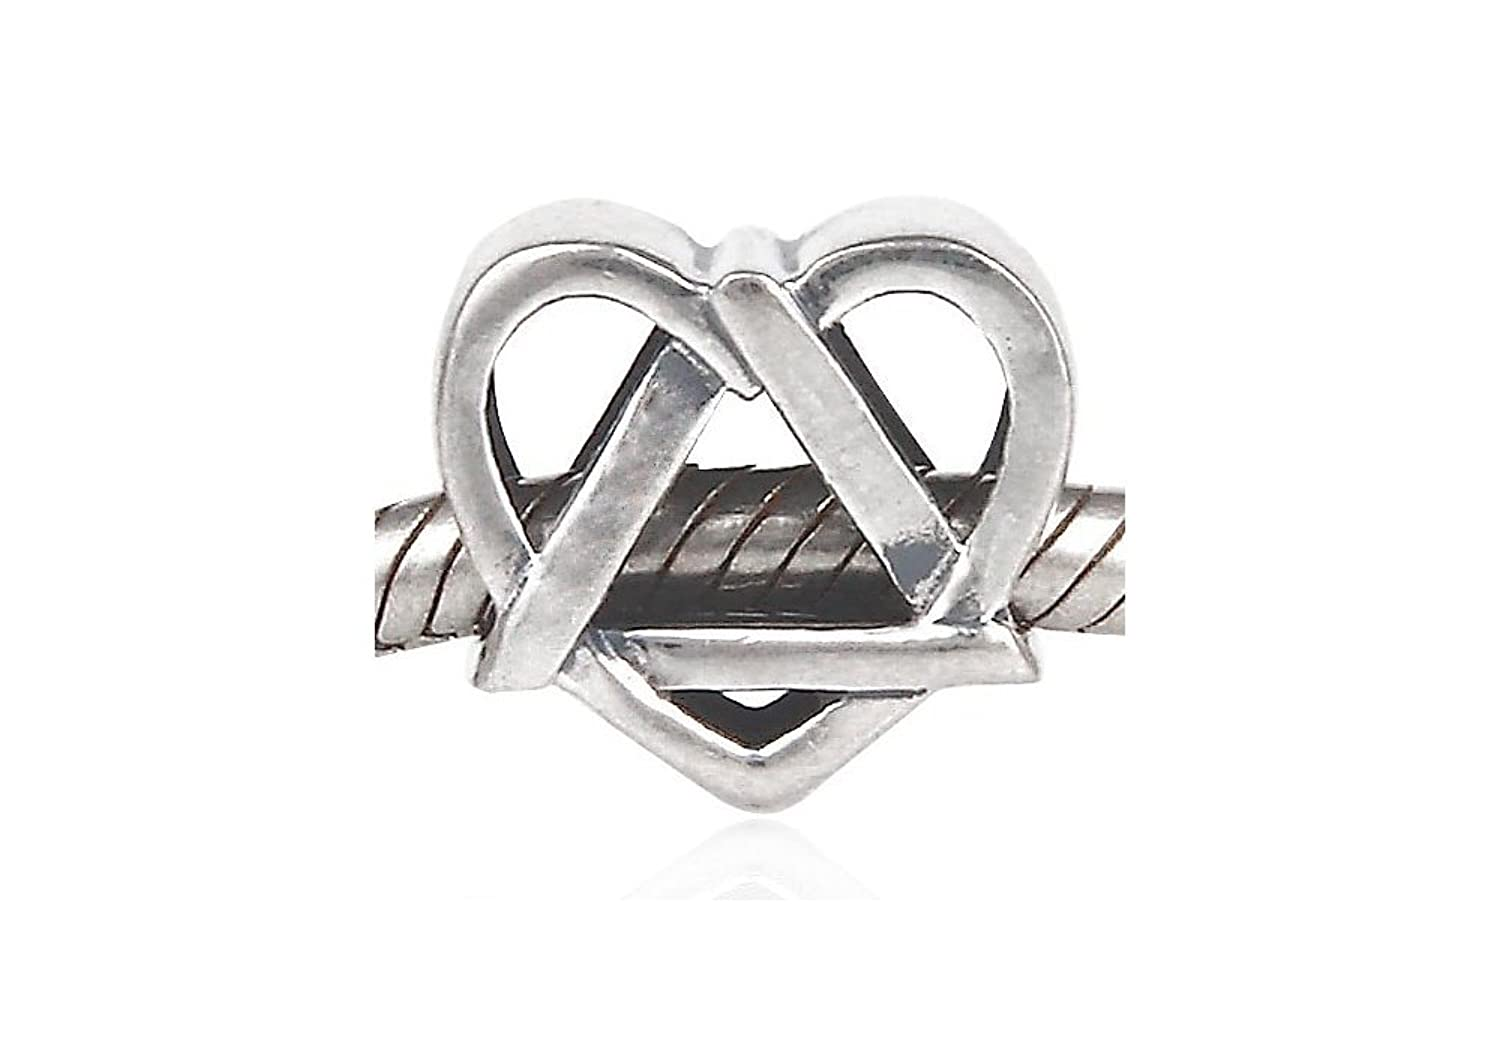 Adoption symbol sterling silver charm bead fits pandora adoption symbol sterling silver charm bead fits pandora chamilia etc style bracelets spanglebead amazon jewellery buycottarizona Image collections